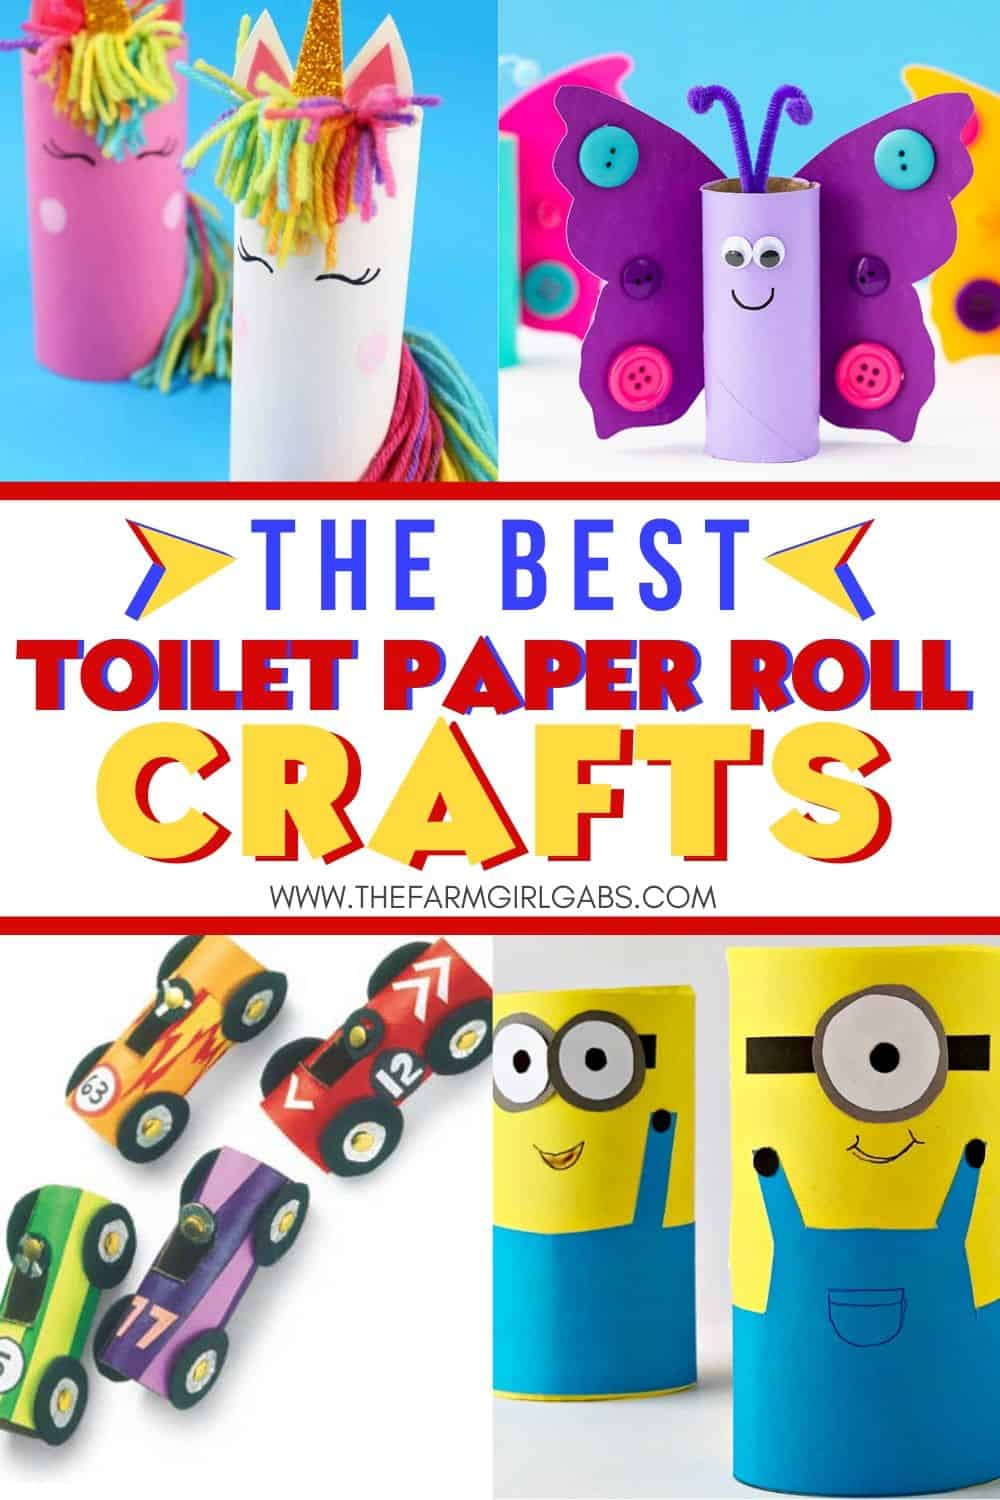 Did you stock up on toilet paper because of the coronavirus? These Easy Toilet Paper Roll Crafts for kids are a great way to recycle the toilet paper rolls.